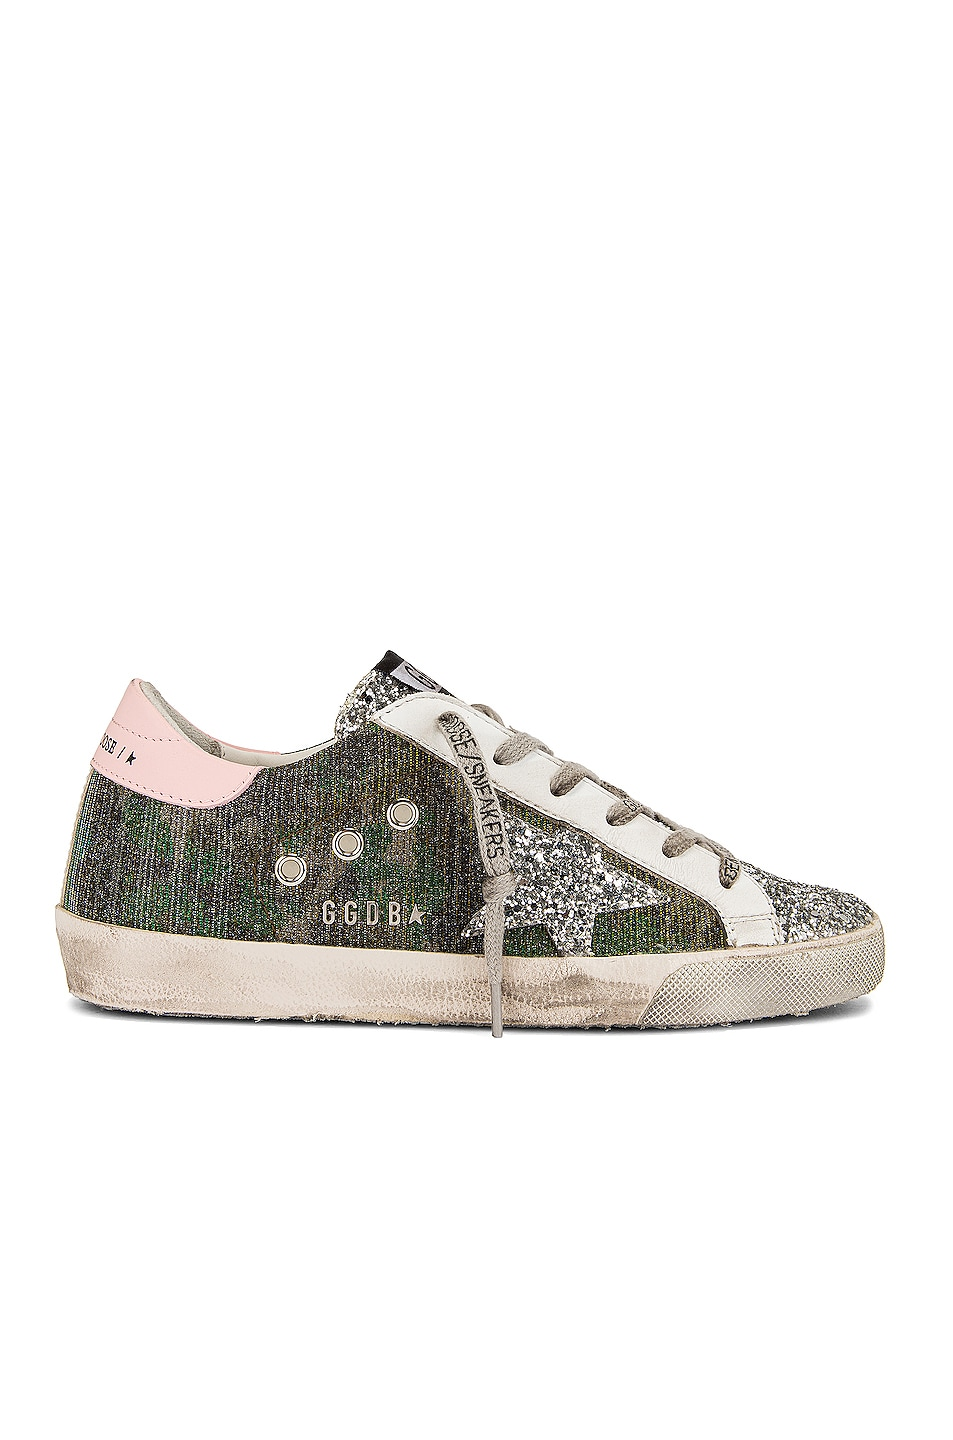 Image 1 of Golden Goose Super Star Sneaker in Green Camouflage, Silver, Pink & White